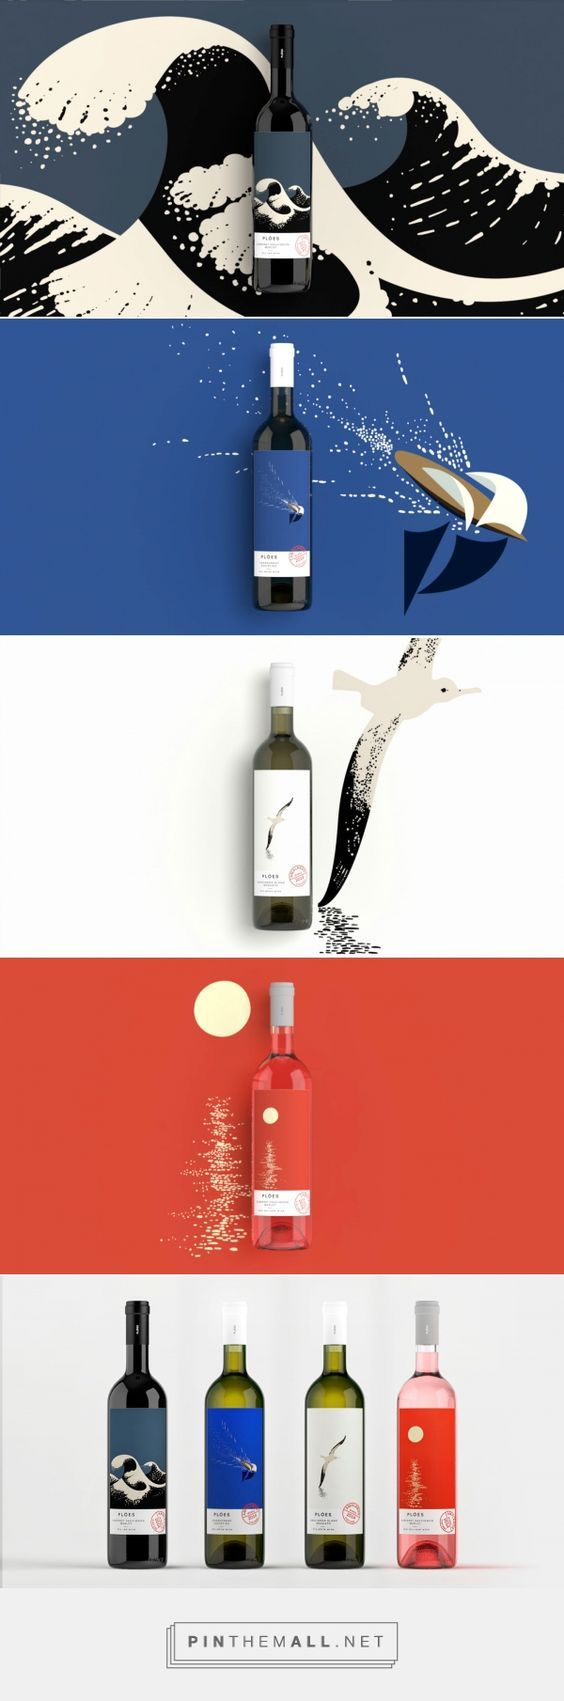 Ploes Wine Packaging by Beetroot Design Group | Fivestar Branding Agency – Design and Branding Agency & Curated Inspiration Gallery